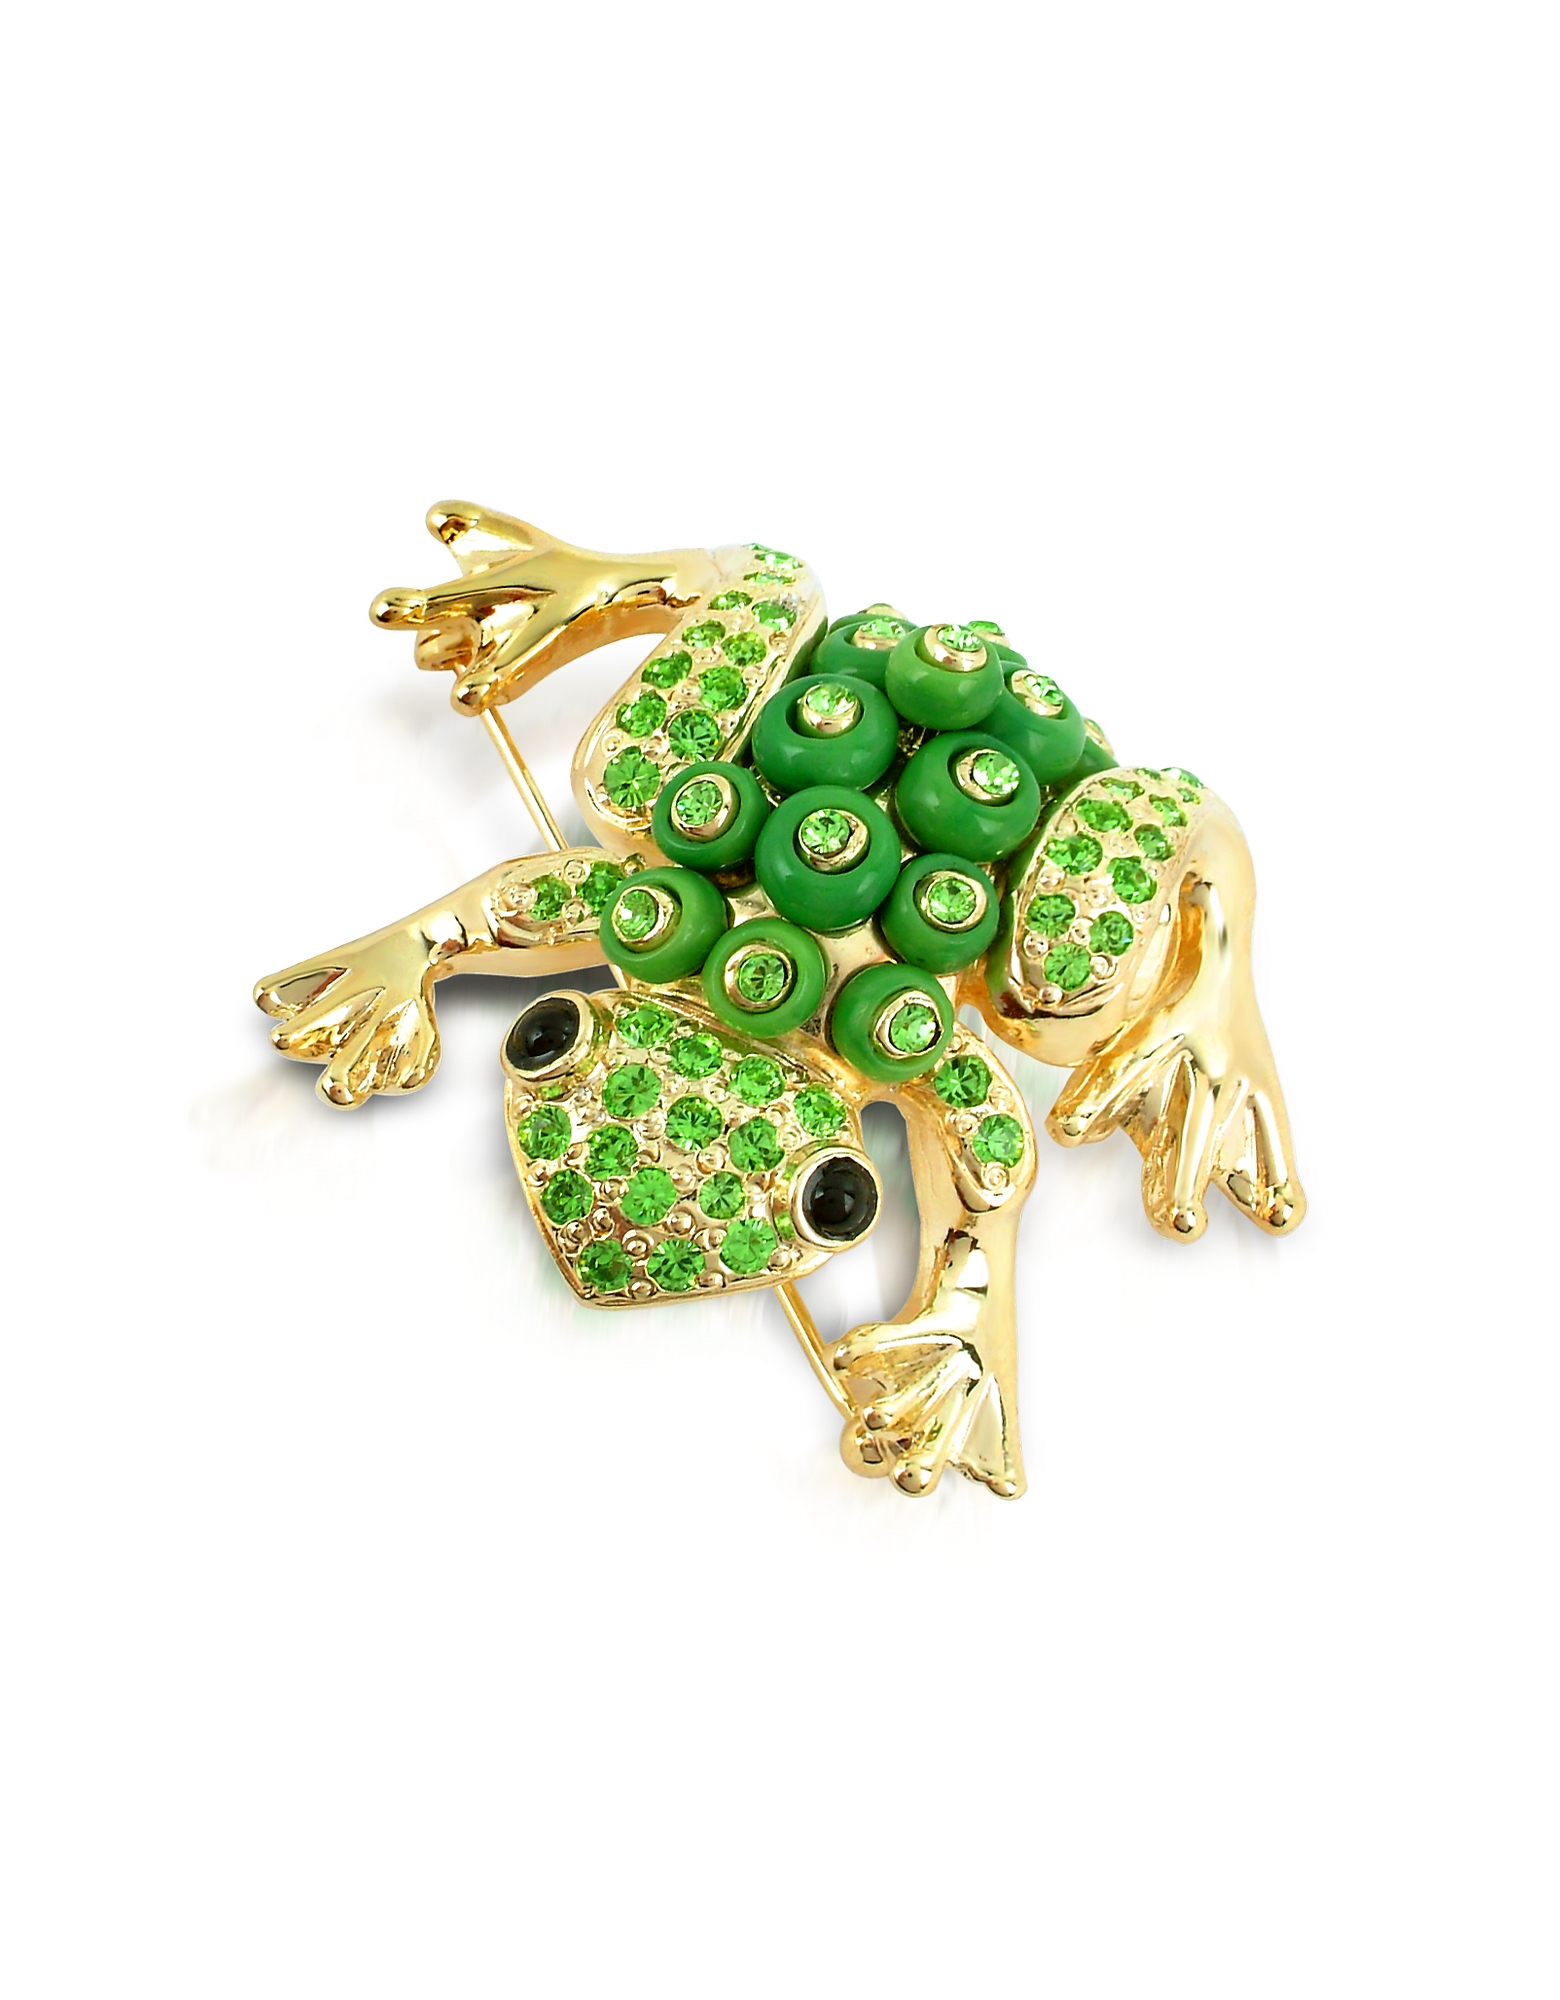 Image of AZ Collection Designer Brooches & Pins, Green Frog Brooch